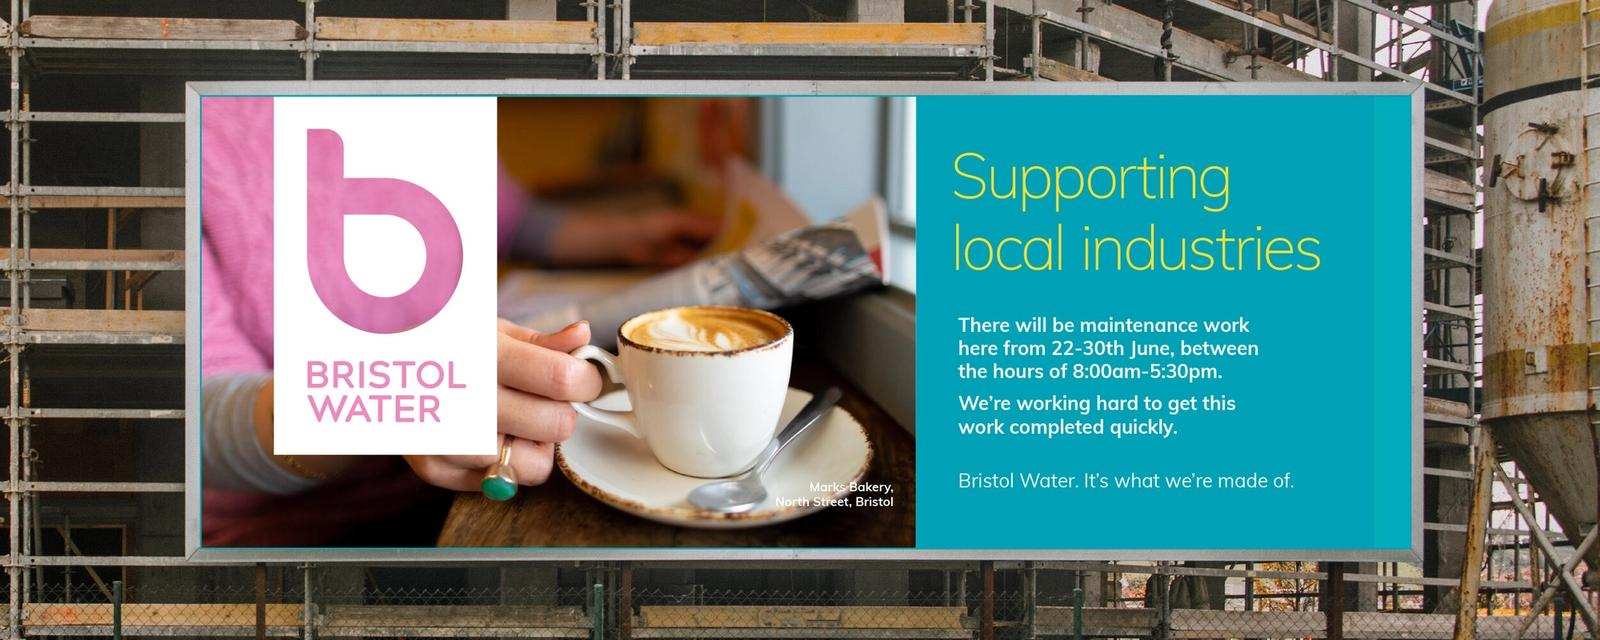 Bristol Water Billboard